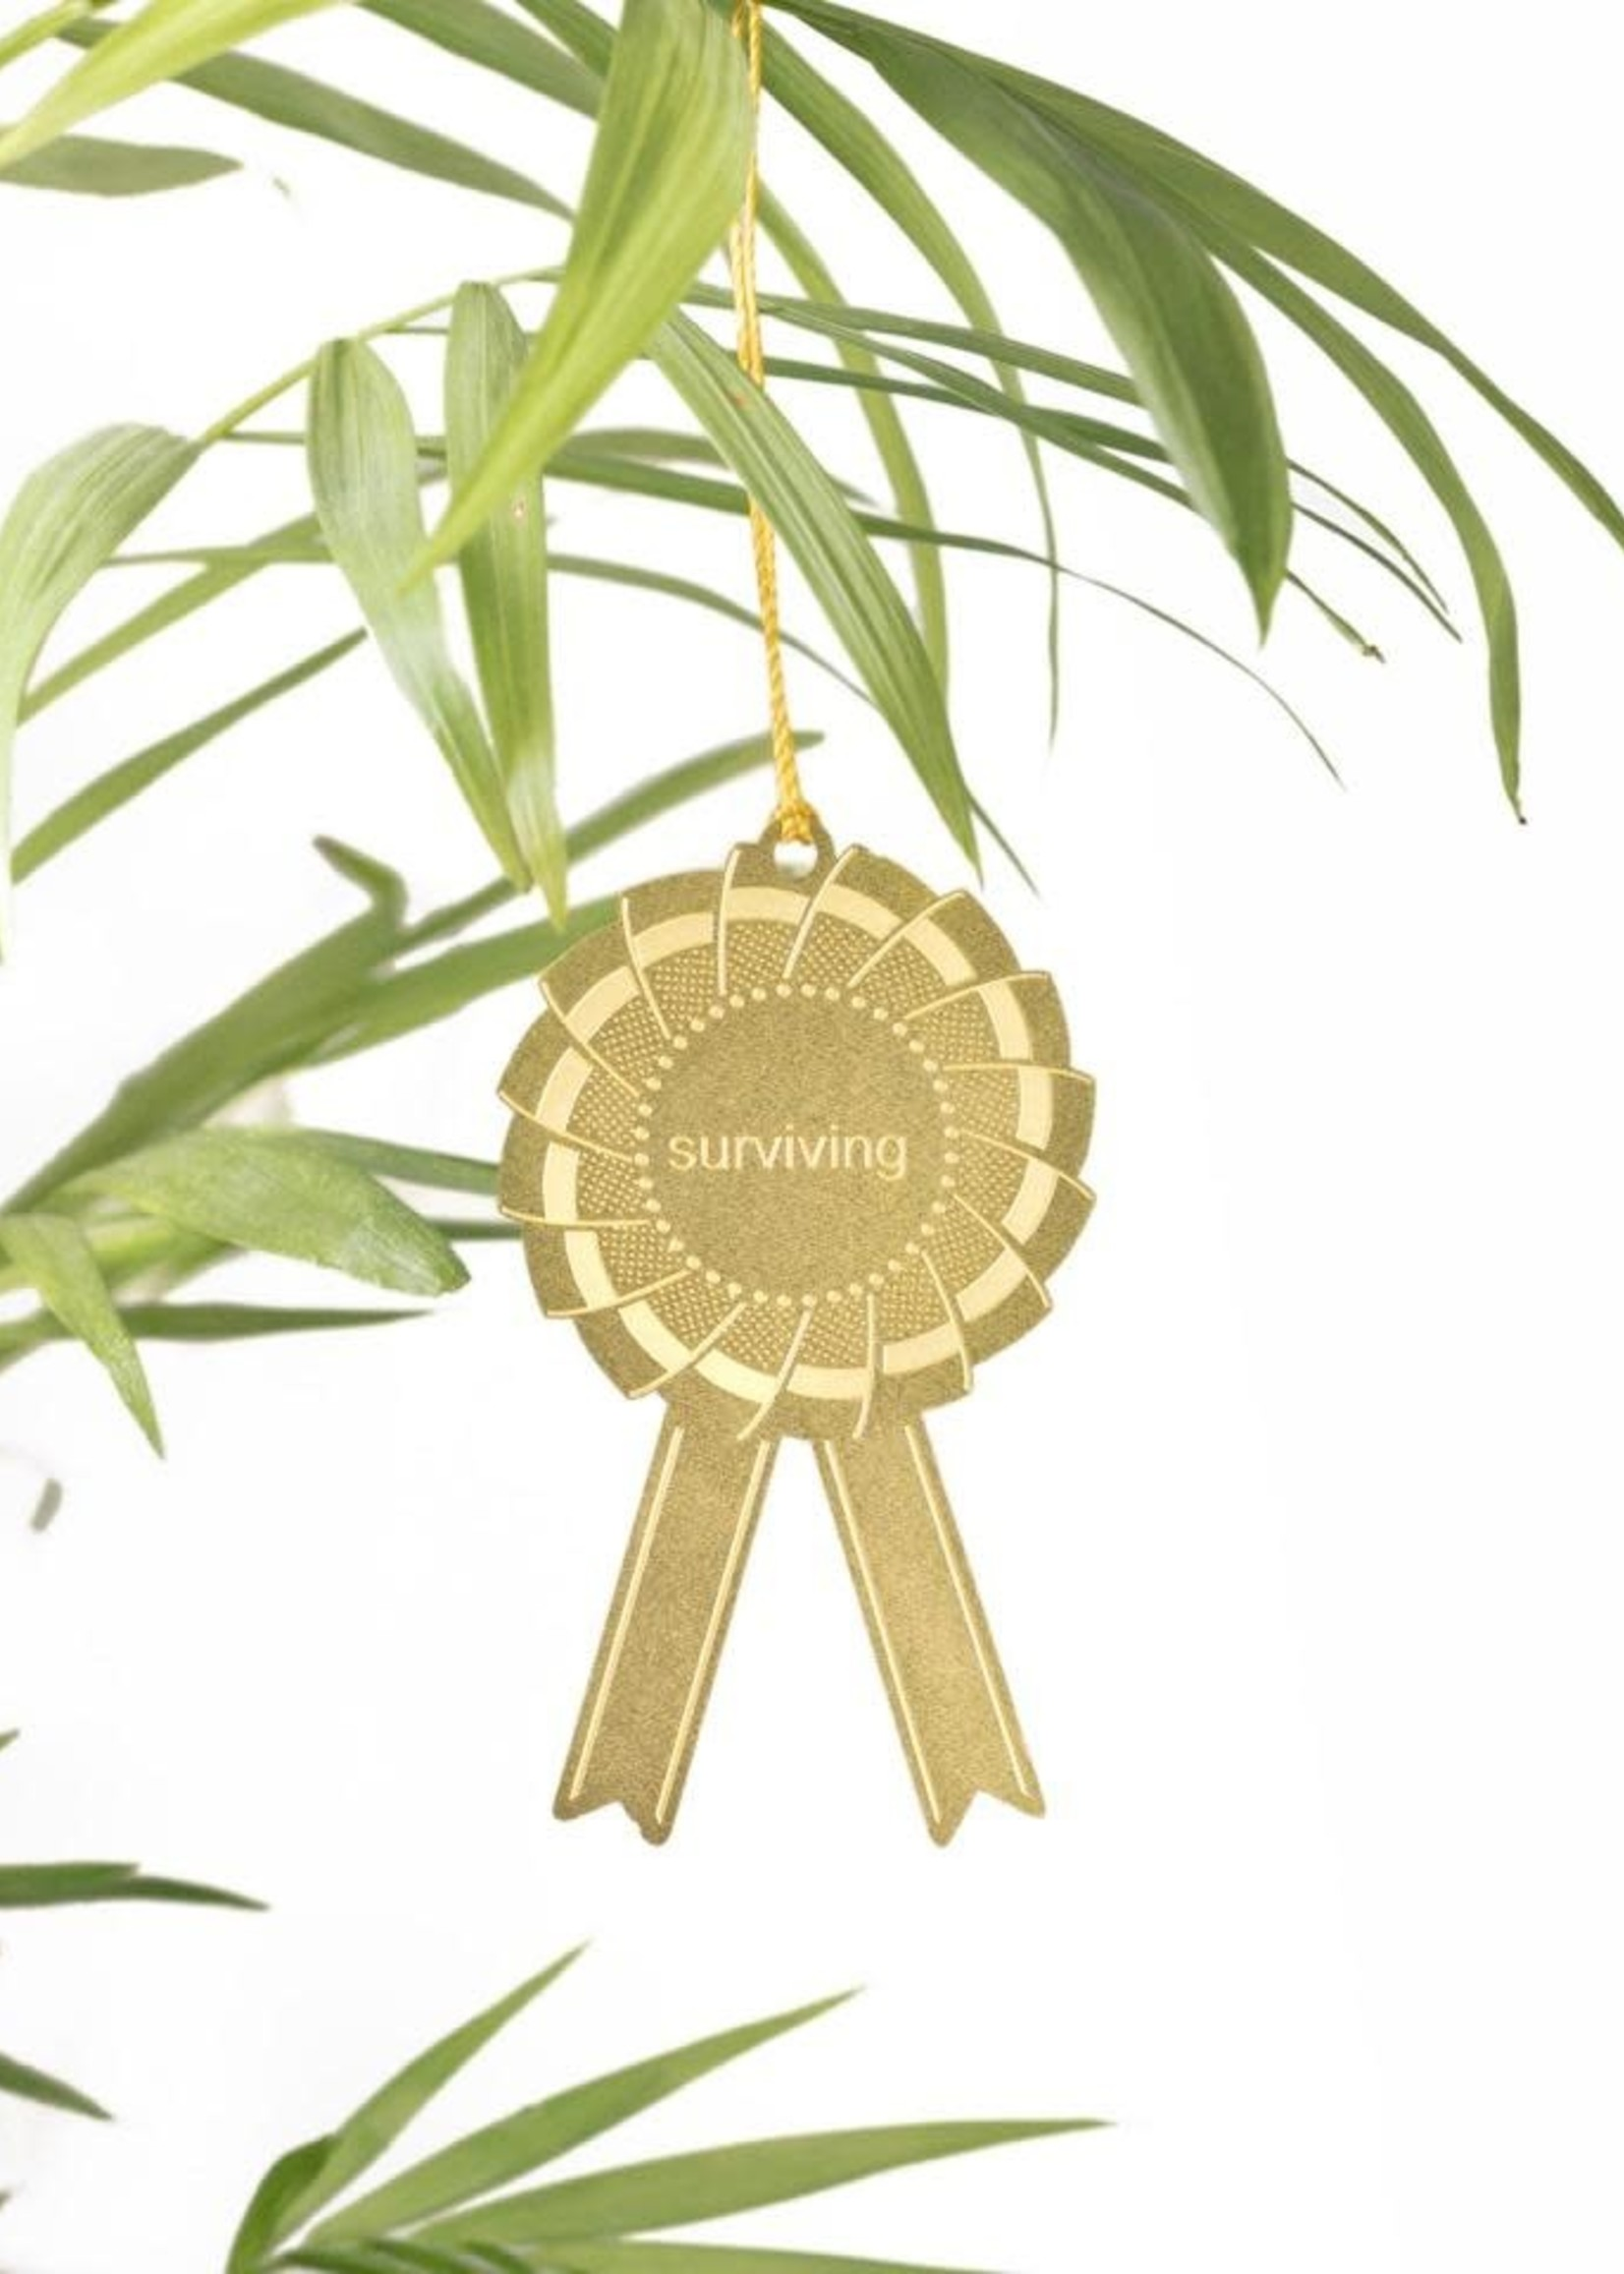 Another Studio Another Studio Plant Award - Surviving